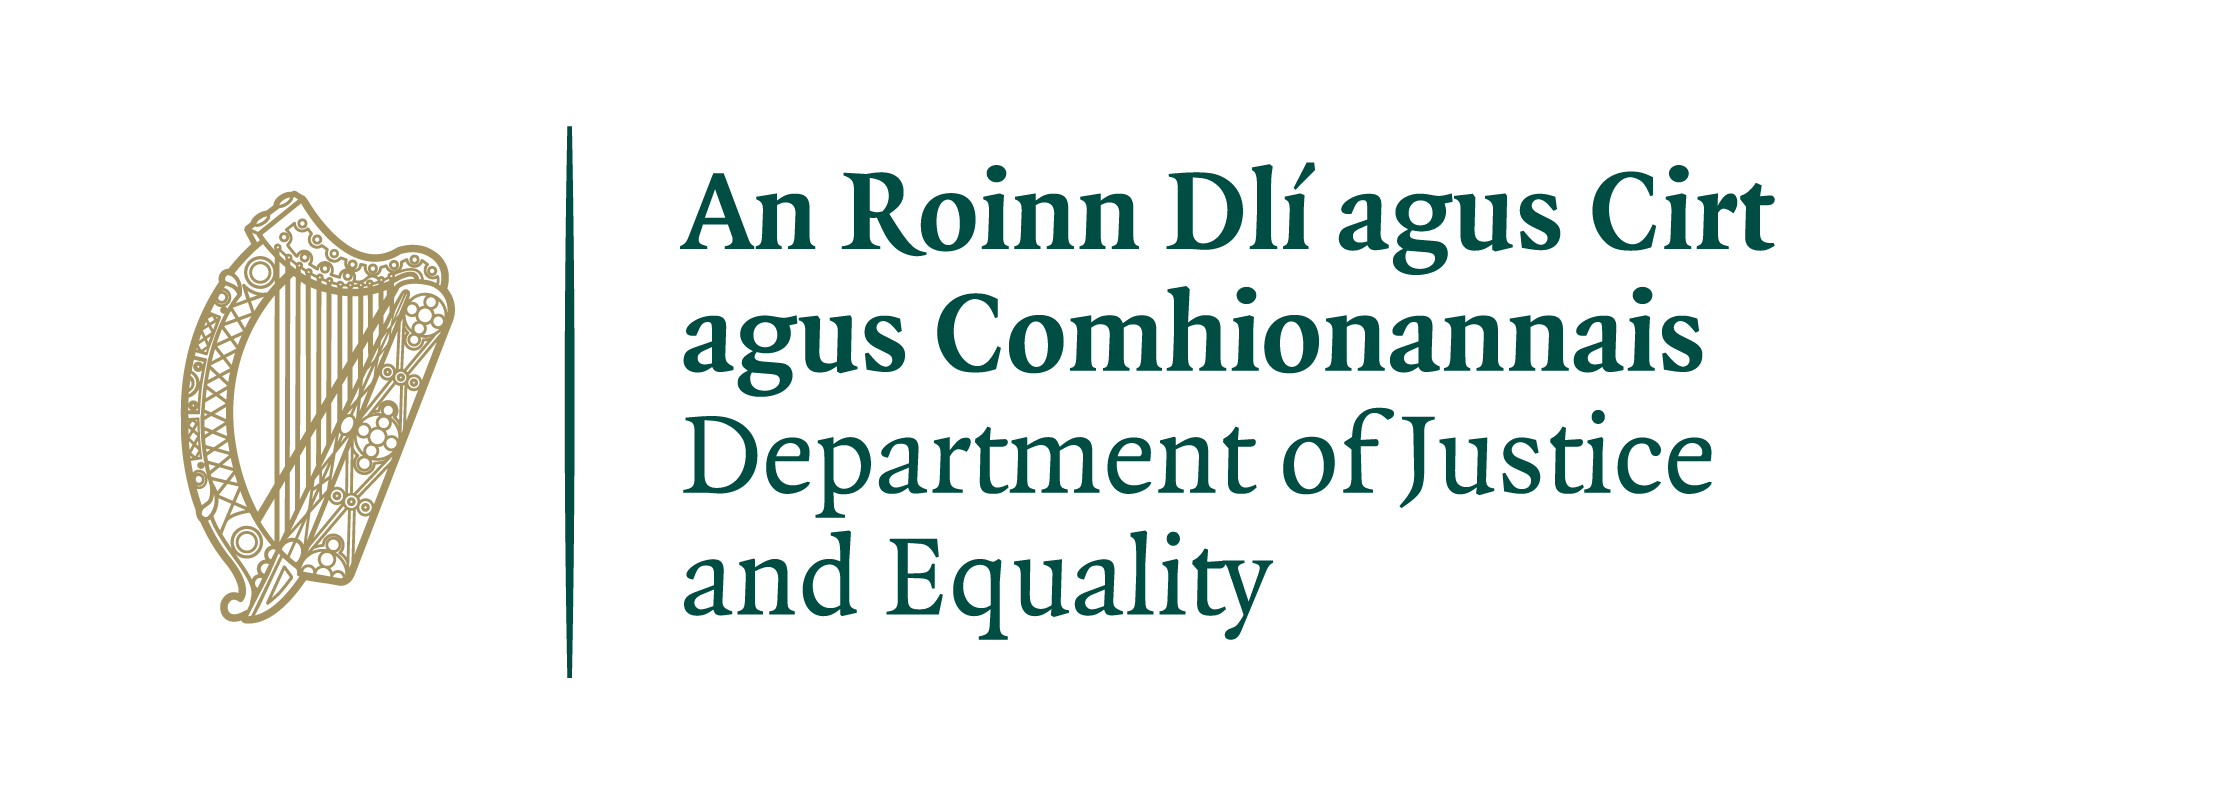 Department of Justice and Equality.